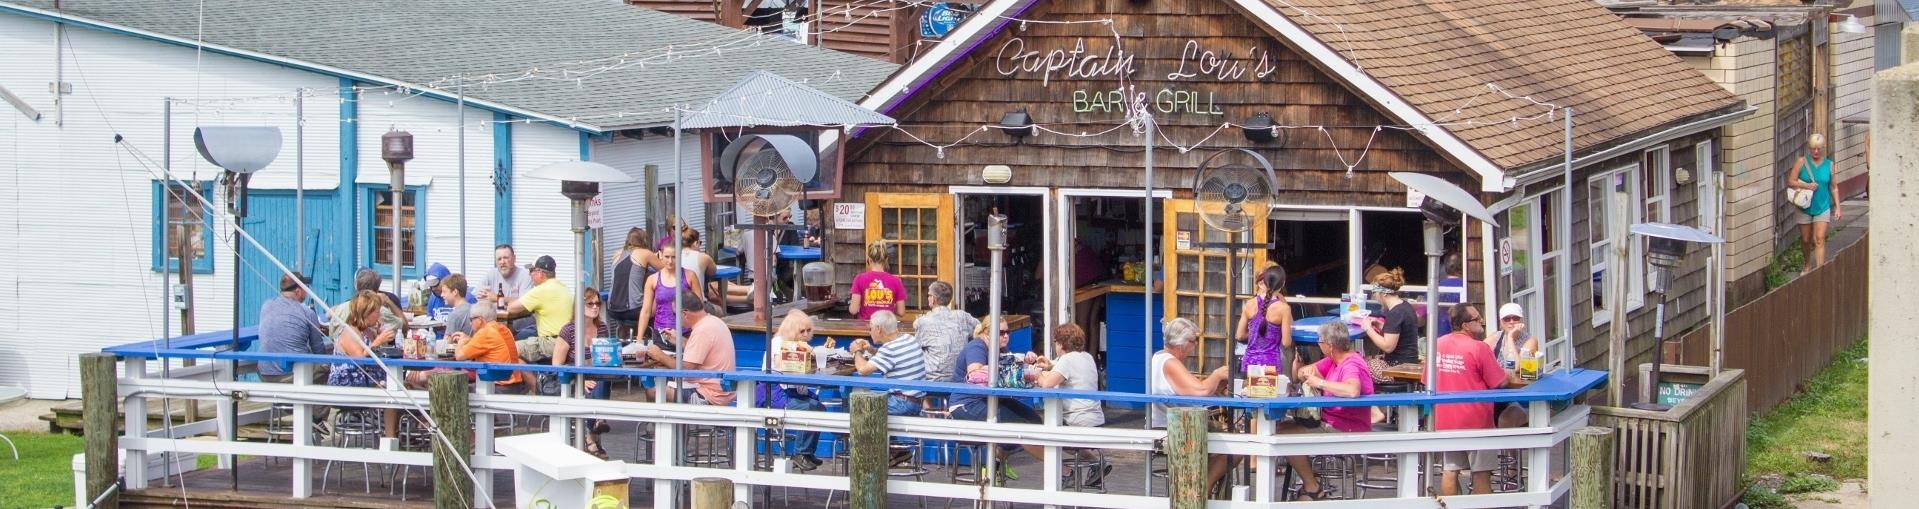 South Haven Michigan Christmas Meal 2020 Happy Hour Bars & Restaurants In South Haven | South Haven